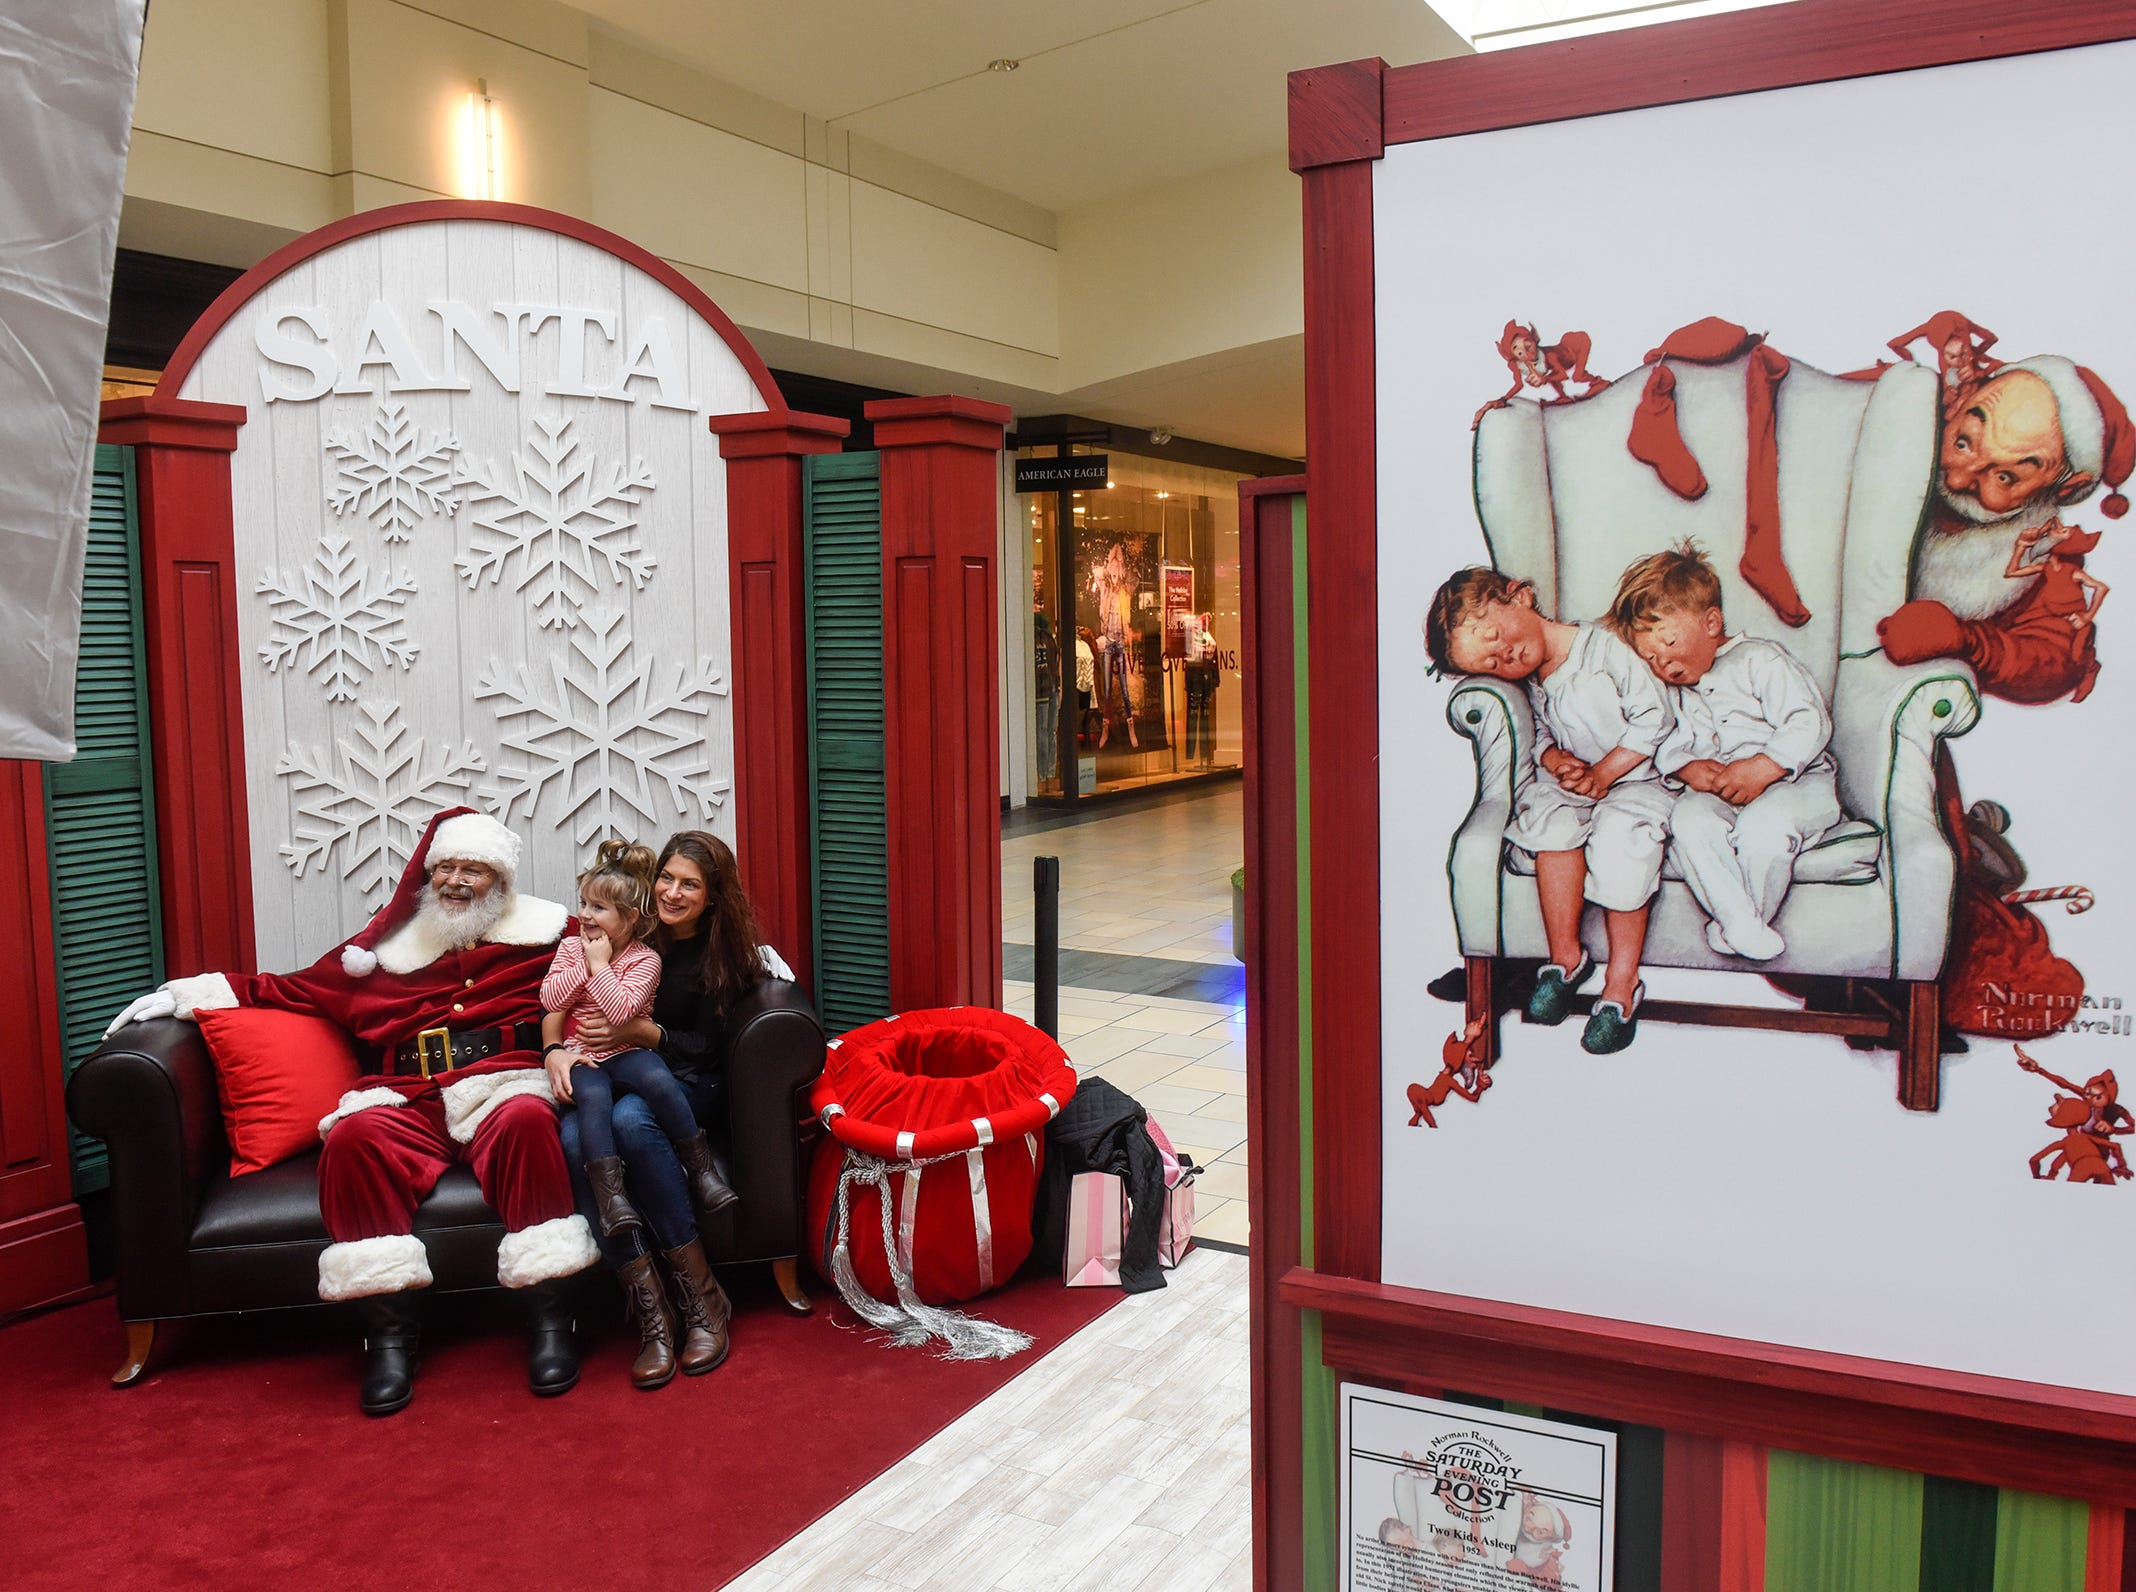 Classic Santa-themed artwork surrounds the Santa Claus set Friday, Nov. 30, at Crossroads Center in St. Cloud.